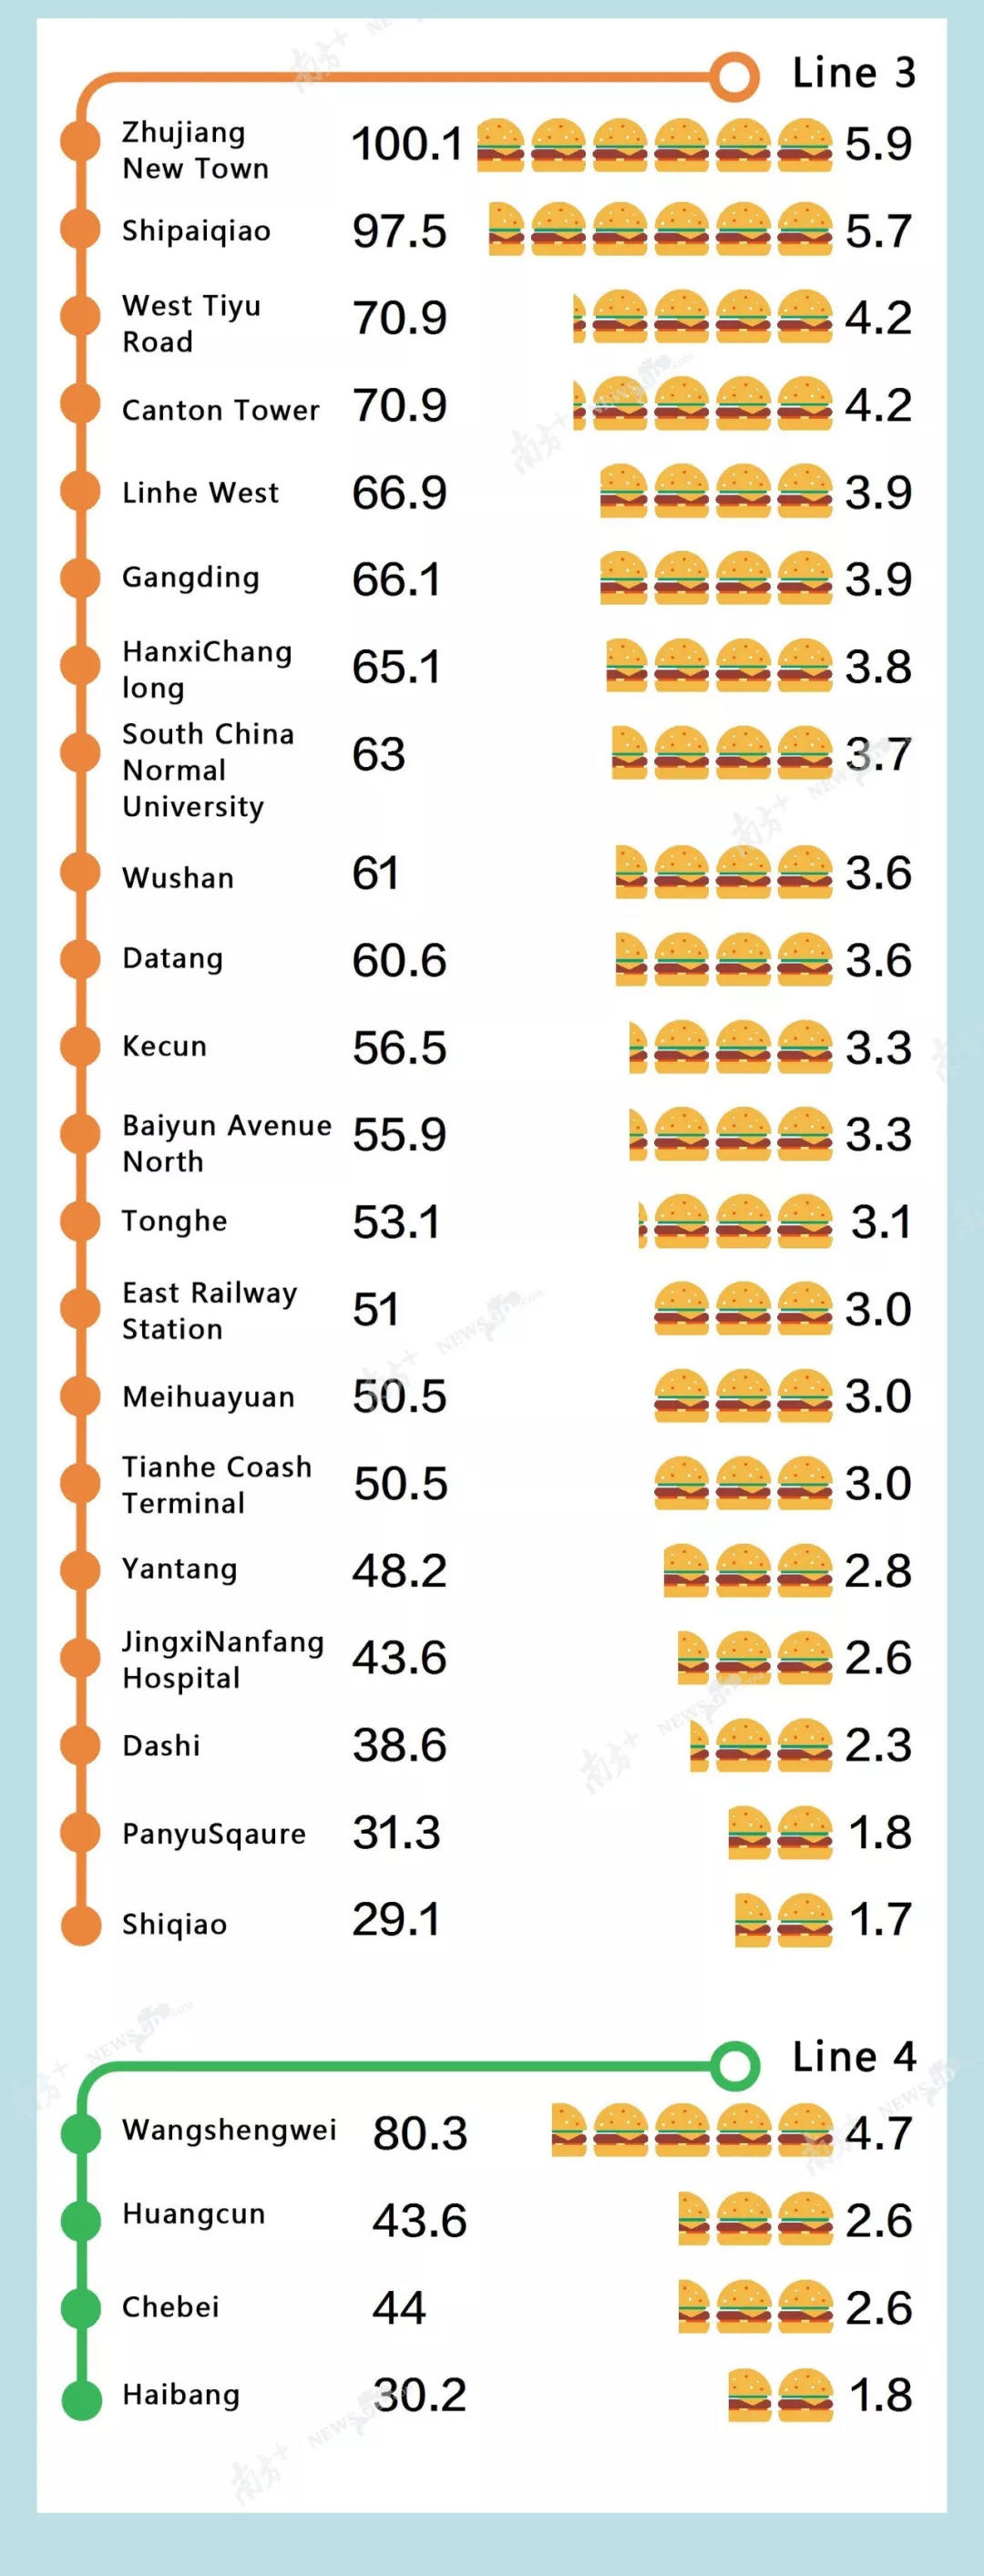 Monthly Rent In China = How Many Big Macs?